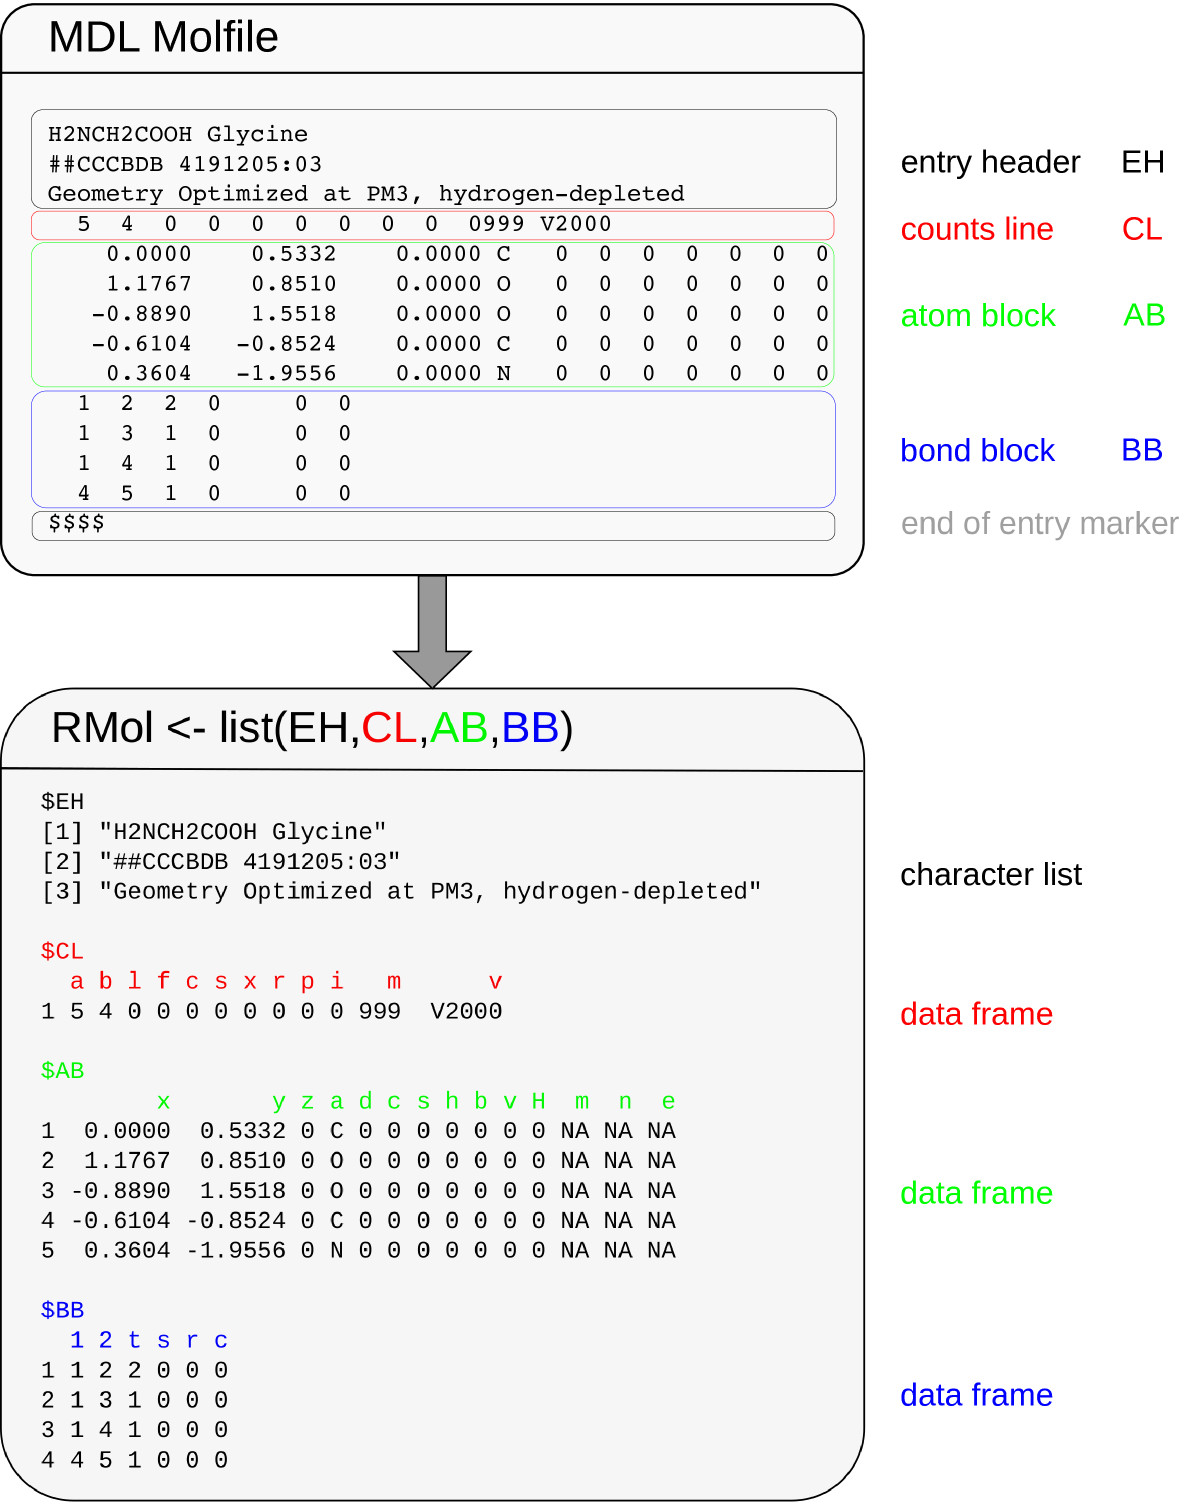 http://static-content.springer.com/image/art%3A10.1186%2F1751-0473-7-12/MediaObjects/13029_2012_Article_80_Fig1_HTML.jpg